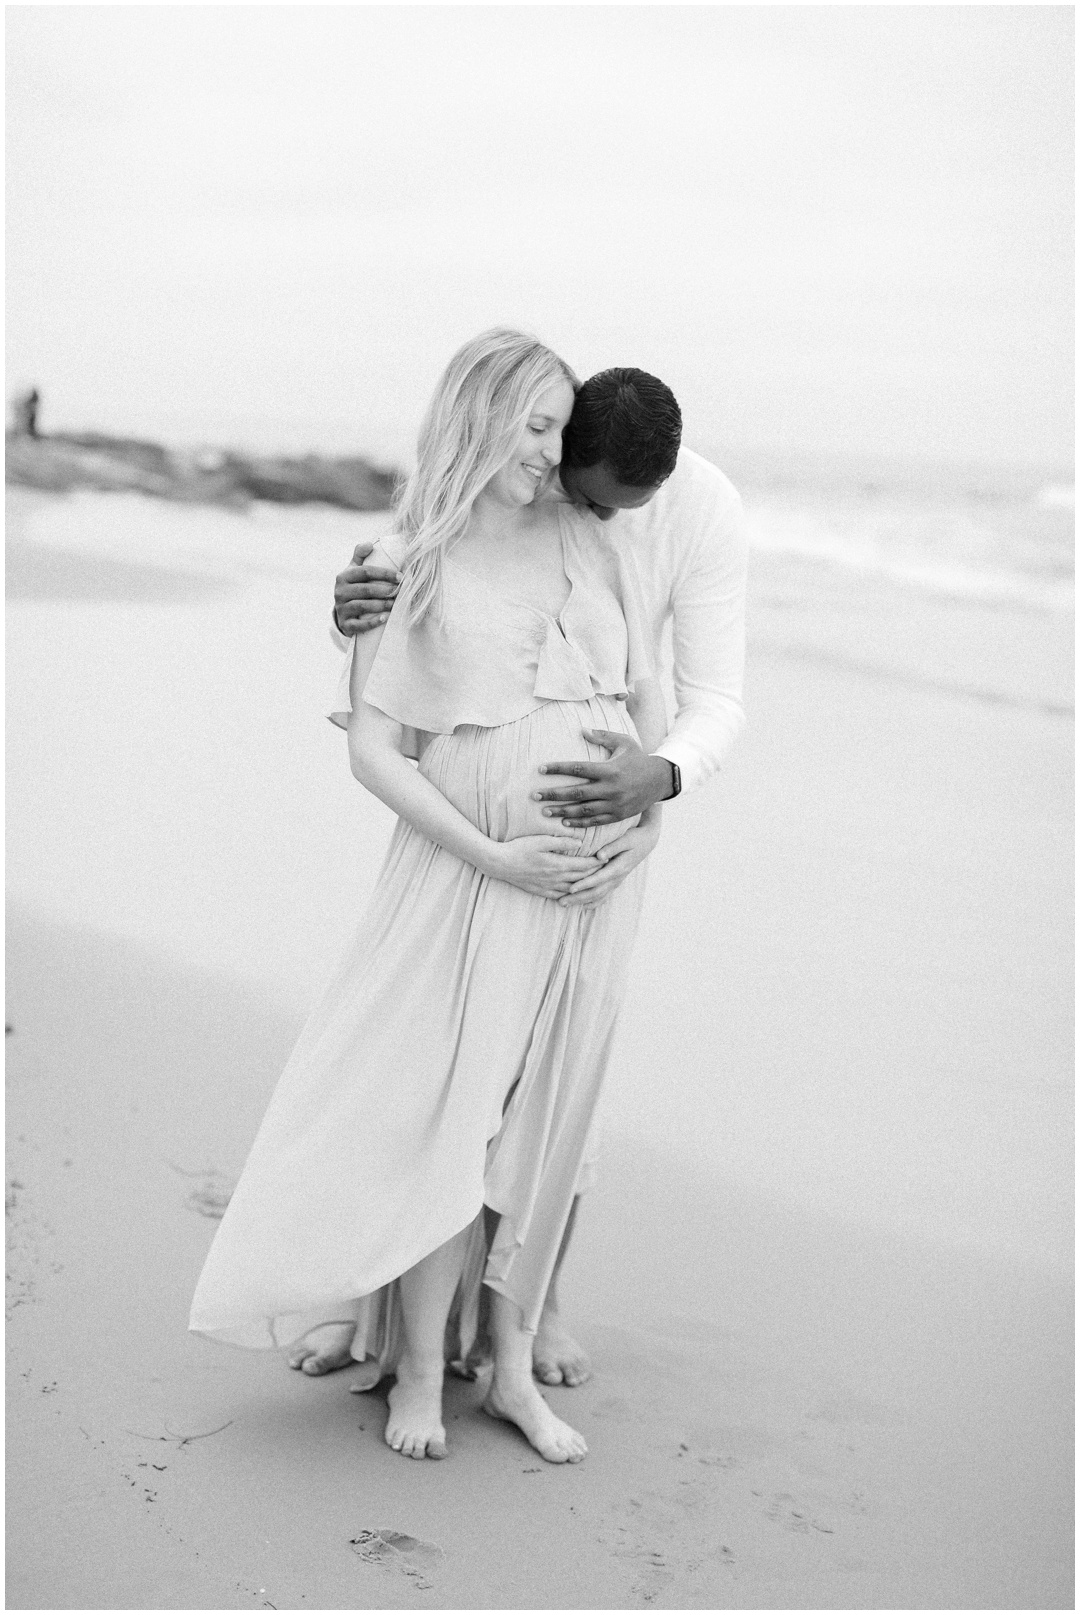 Newport_Beach_Newborn_Light_Airy_Natural_Photographer_Newport_Beach_Photographer_Orange_County_Family_Photographer_Cori_Kleckner_Photography_Huntington_Beach_Photographer_Family_OC_Maternity_Jennifer_Spohn_Rahul_Spohn_3636.jpg